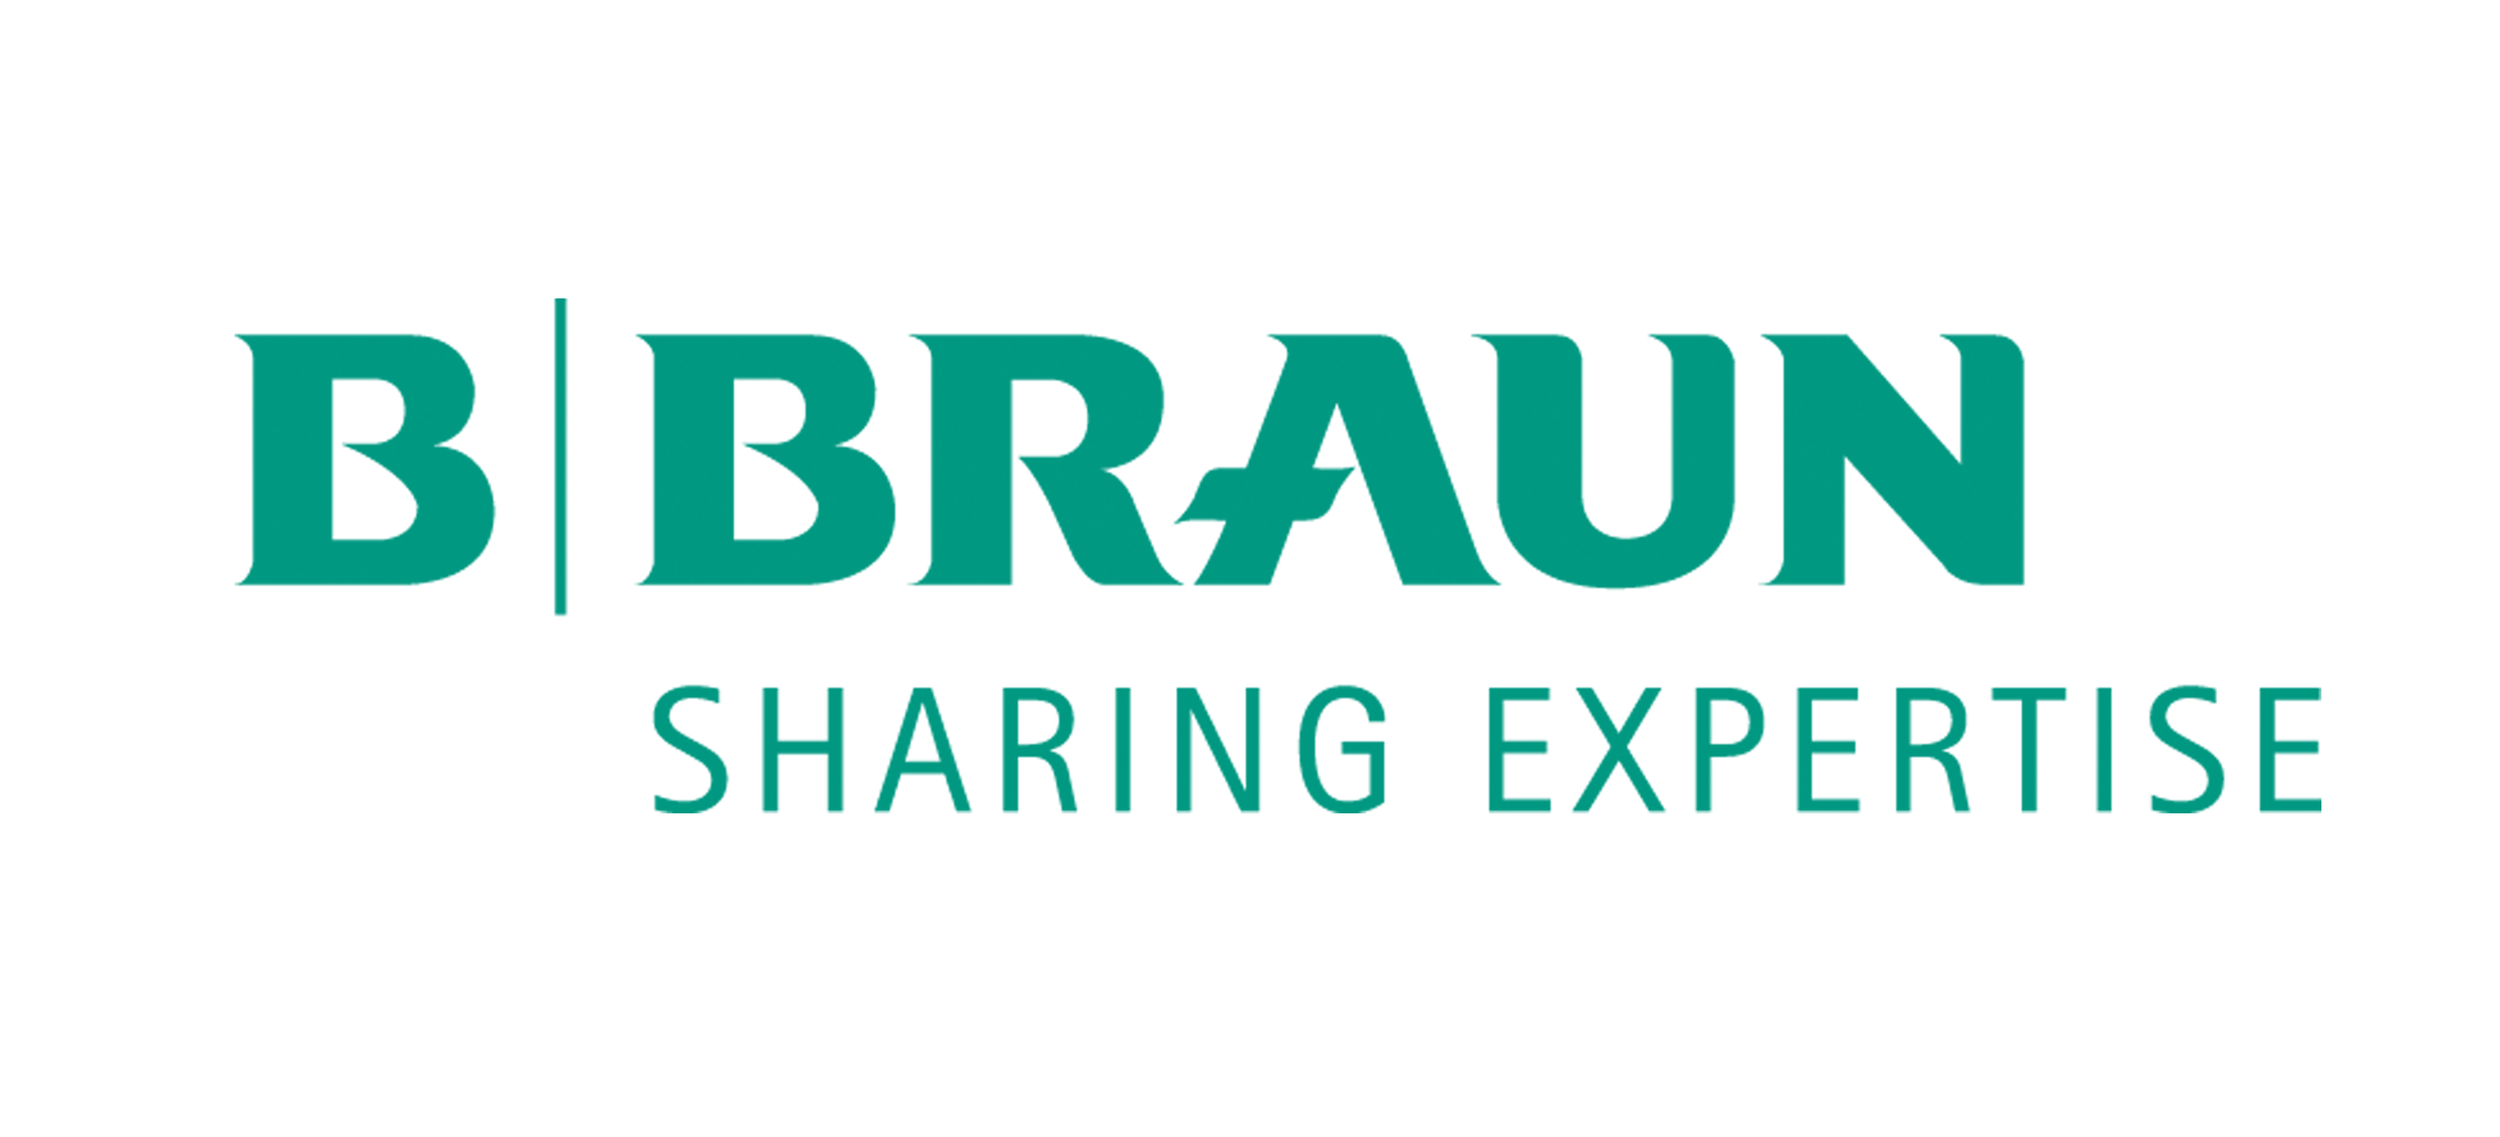 B. Braun Medical